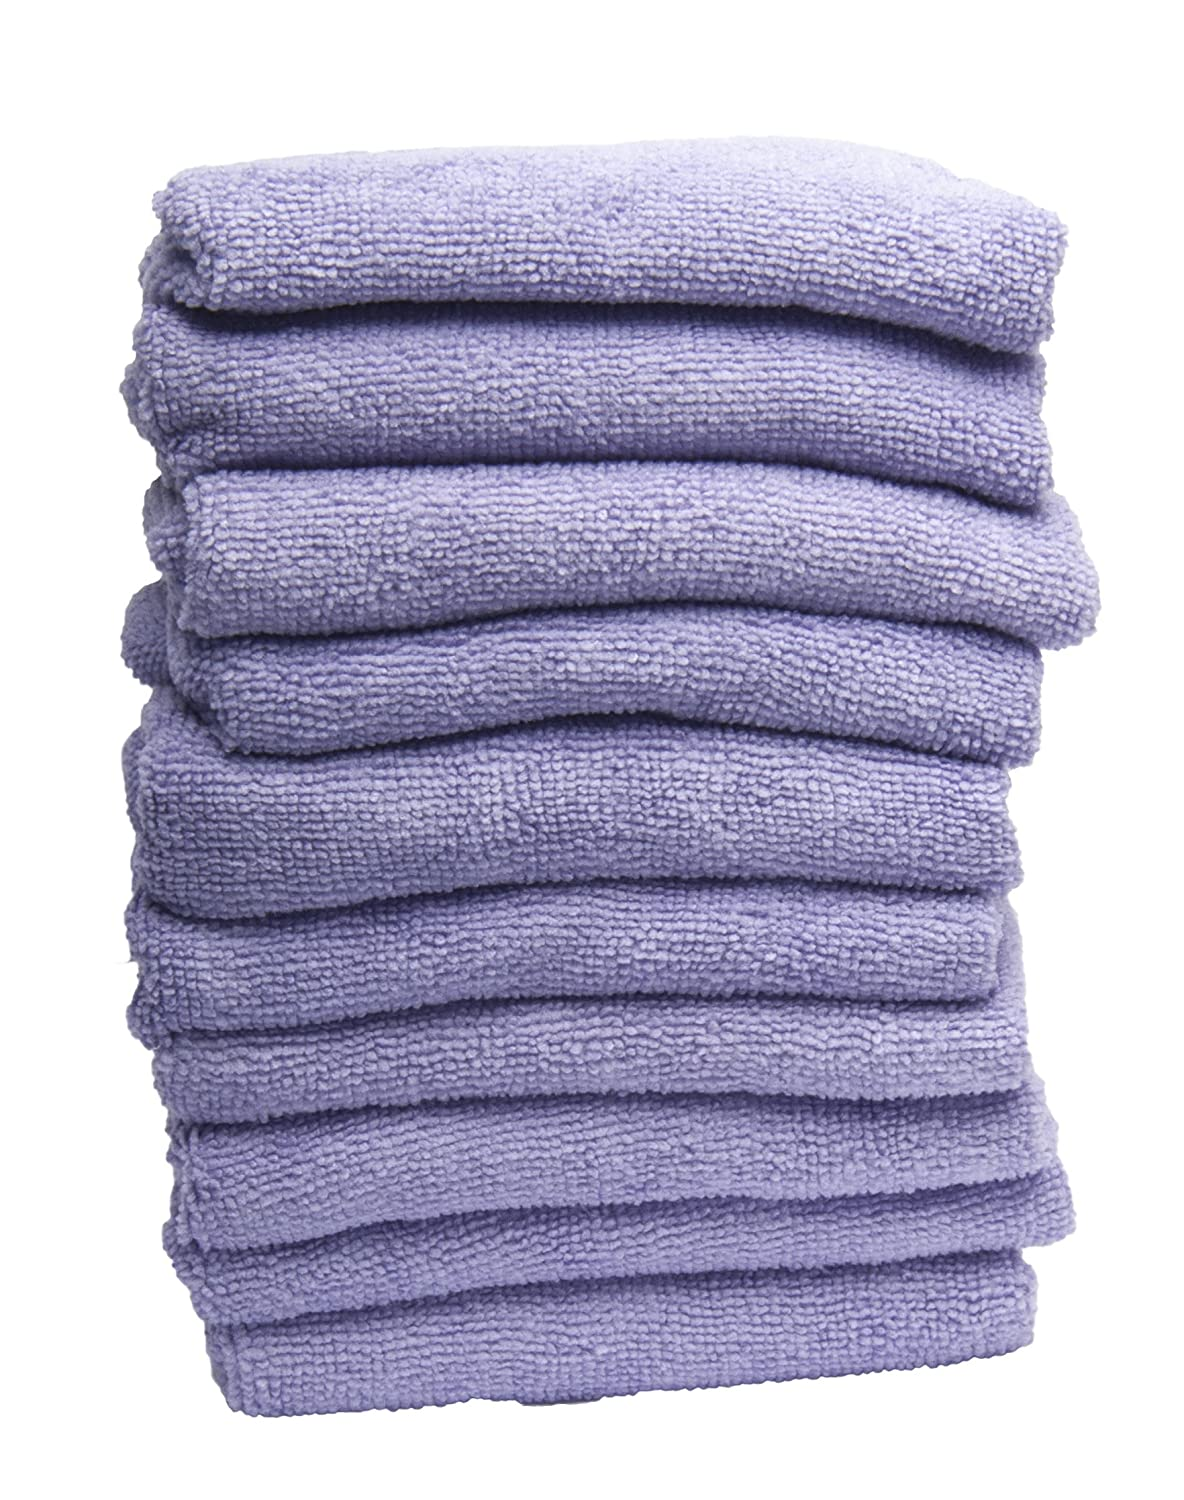 Softees Towels with Duraguard, Aqua, 10-Pack Fromm 45042